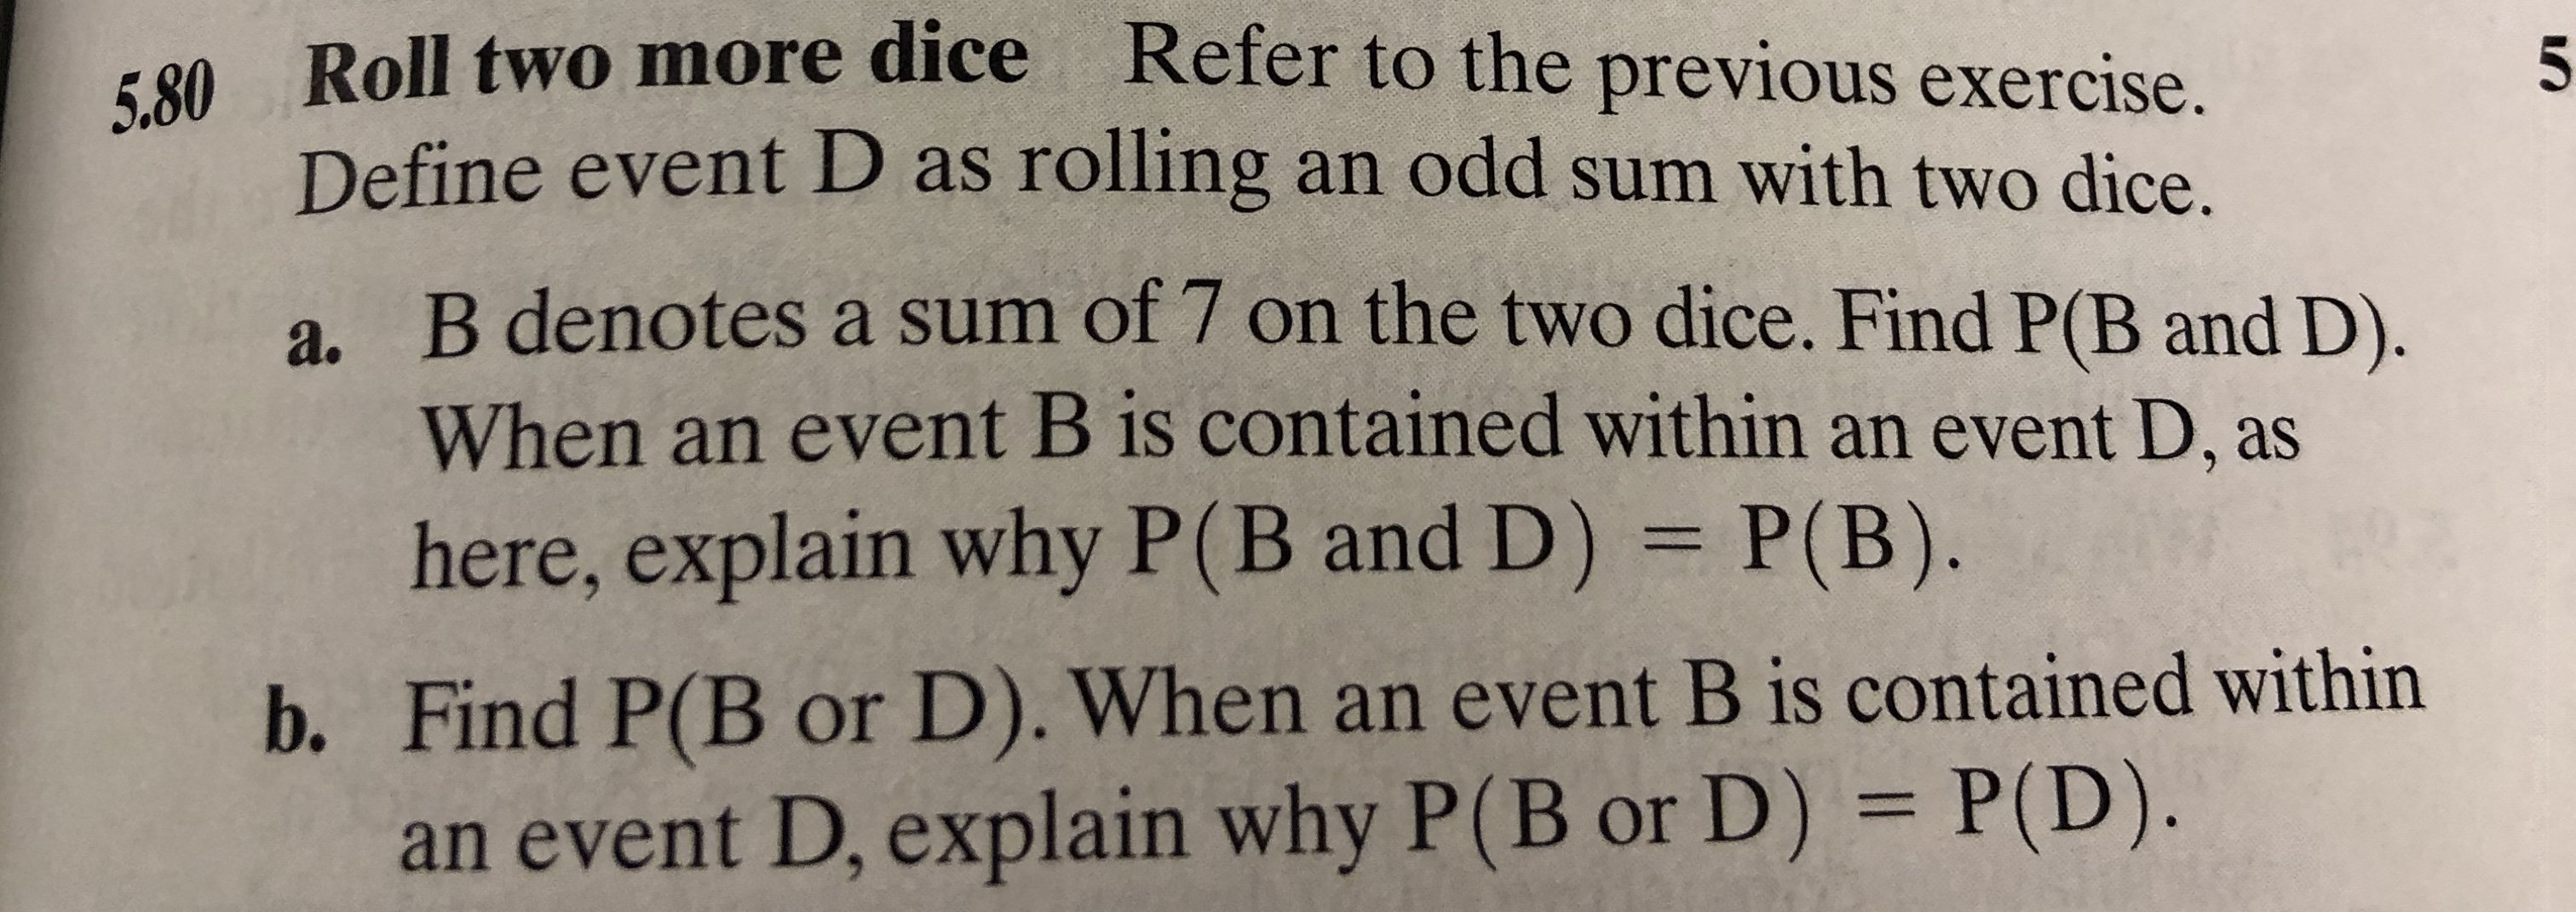 Roll two more dice Refer to the previous exercise. 5.80 5 Define event D as rolling an odd sum with two dice. a. B denotes a sum of 7 on the two dice. Find P(B and D). When an event B is contained within an event D, as here, explain why P(B and D) P(B). b. Find P(B or D). When an event B is contained within an event D, explain why P(B or D) = P(D).